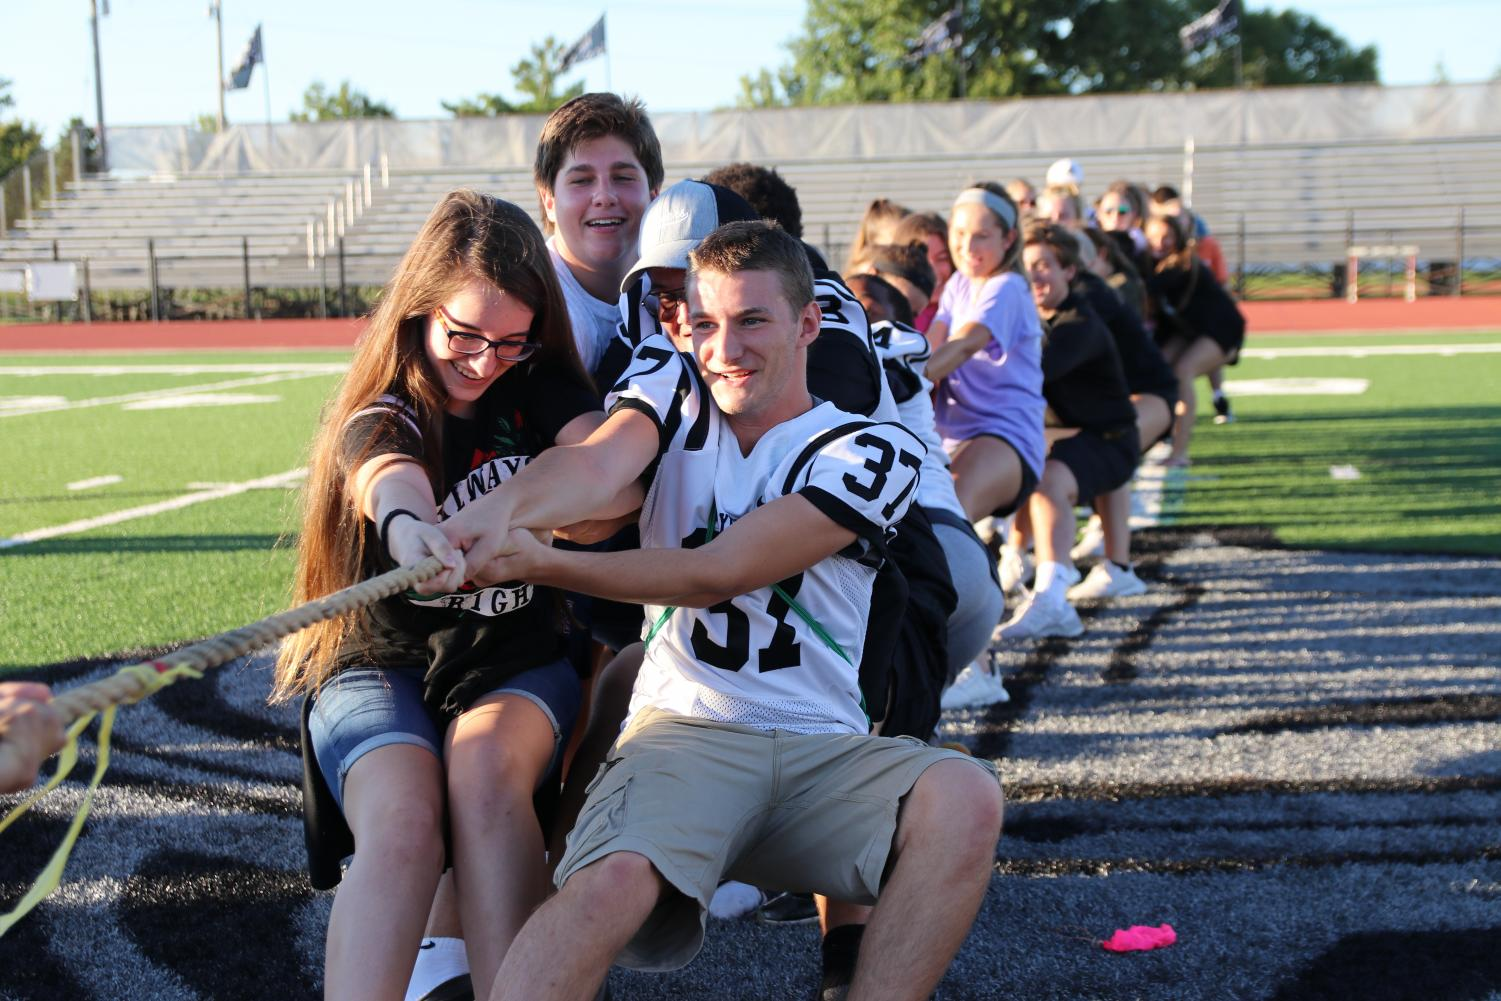 To+lead+the+juniors+to+victory+in+a+game+of+tug-of-war+at+the+Homecoming+Kickoff+on+Sunday%2C+Sept.+23%2C+Garrett+McGowan+fights+to+pull+the+rope+towards+his+class.+The++juniors+defeated+the+sophomores%2C+only+to+later+fall+to+the+senior+class.+%22I+could+feel+myself+slipping%2C+and+I+didn%27t+want+to+lose%2C+but+I%27m+glad+the+juniors+won+against+the+sophomores%2C%22+McGowan+said.